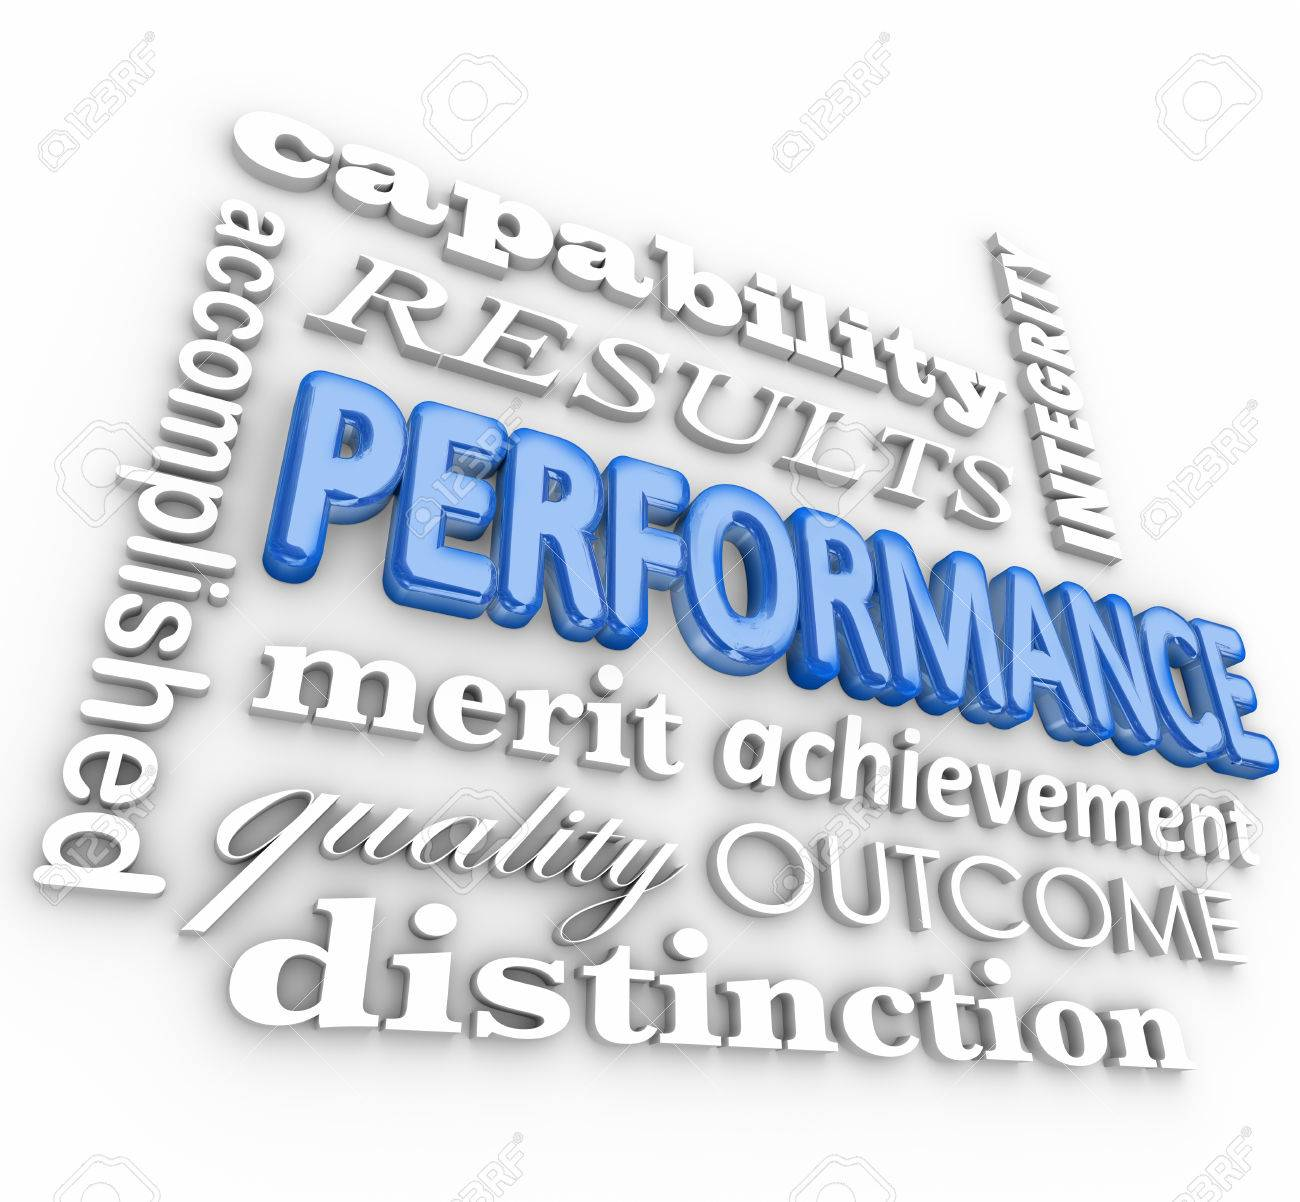 performance word in a d collage including accomplishment merit performance word in a 3d collage including accomplishment merit quality outcome distinction